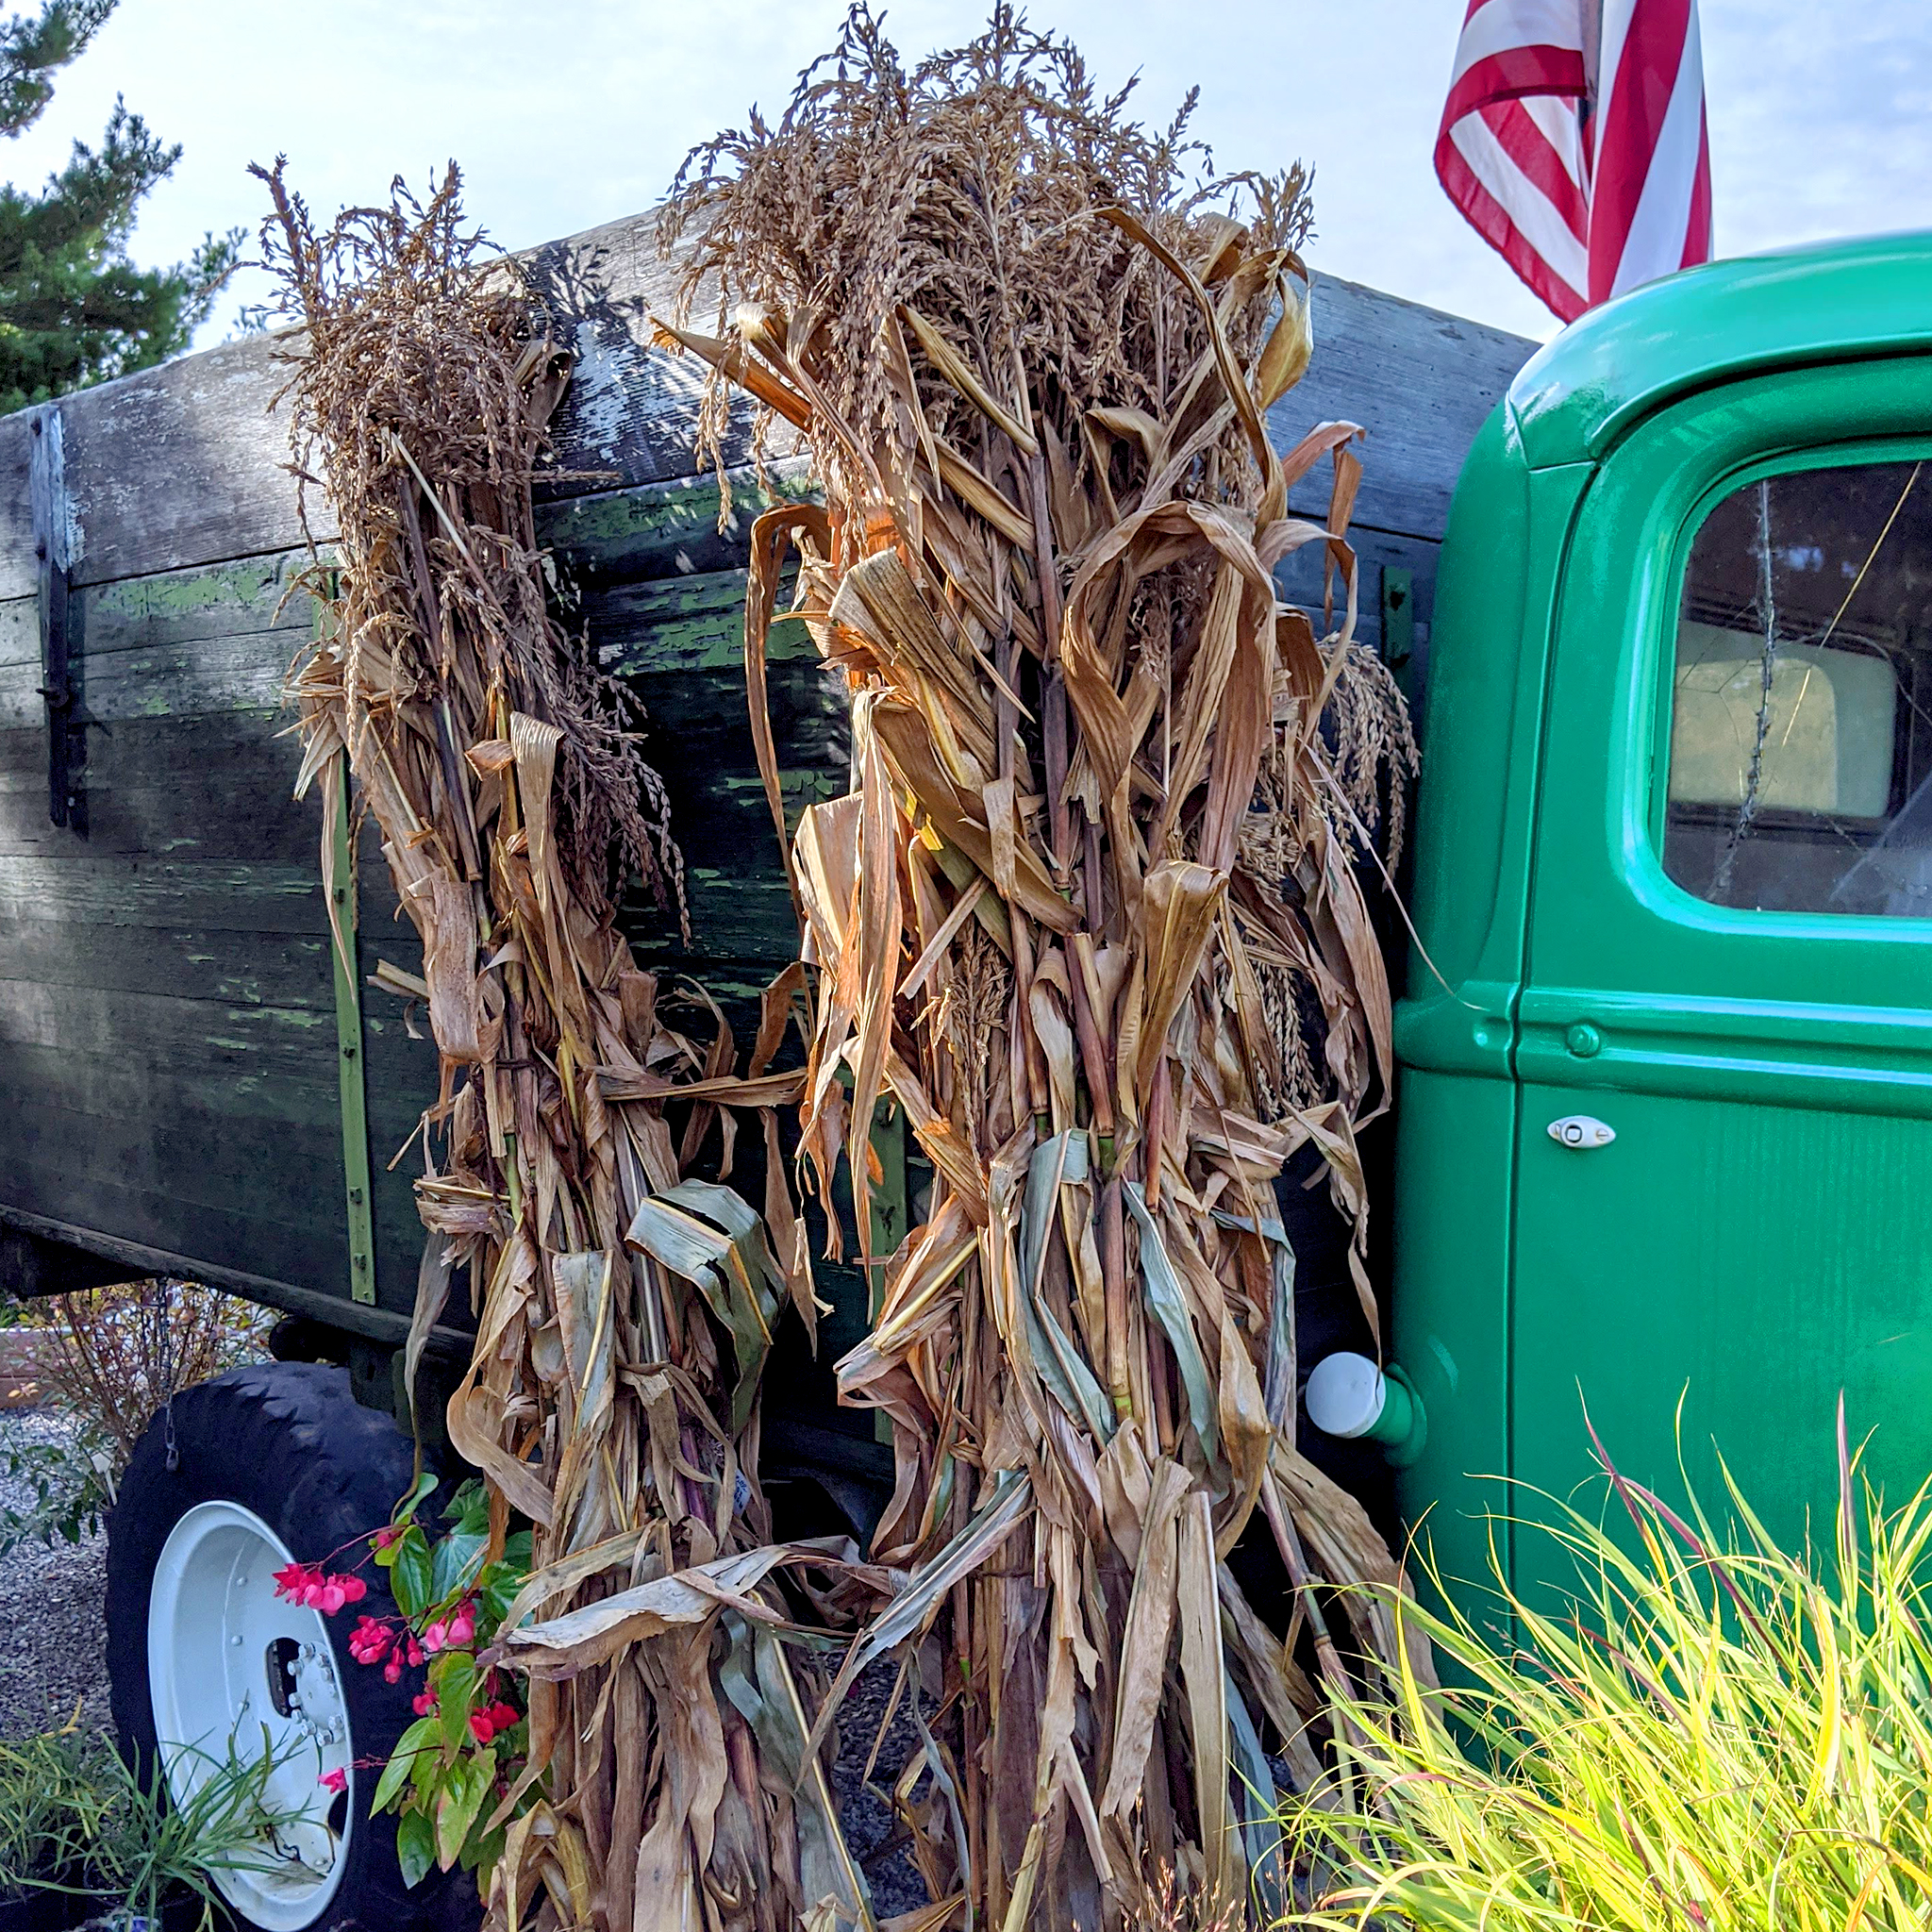 Corn Stalk Bundle Little Fox Farm Traverse City Mi #russell #lombardi's ranch #corn #corn stalks #corn maze #fall #path #boy #sky #words #text #some walks you have to take alone #mockingjay. corn stalk bundle